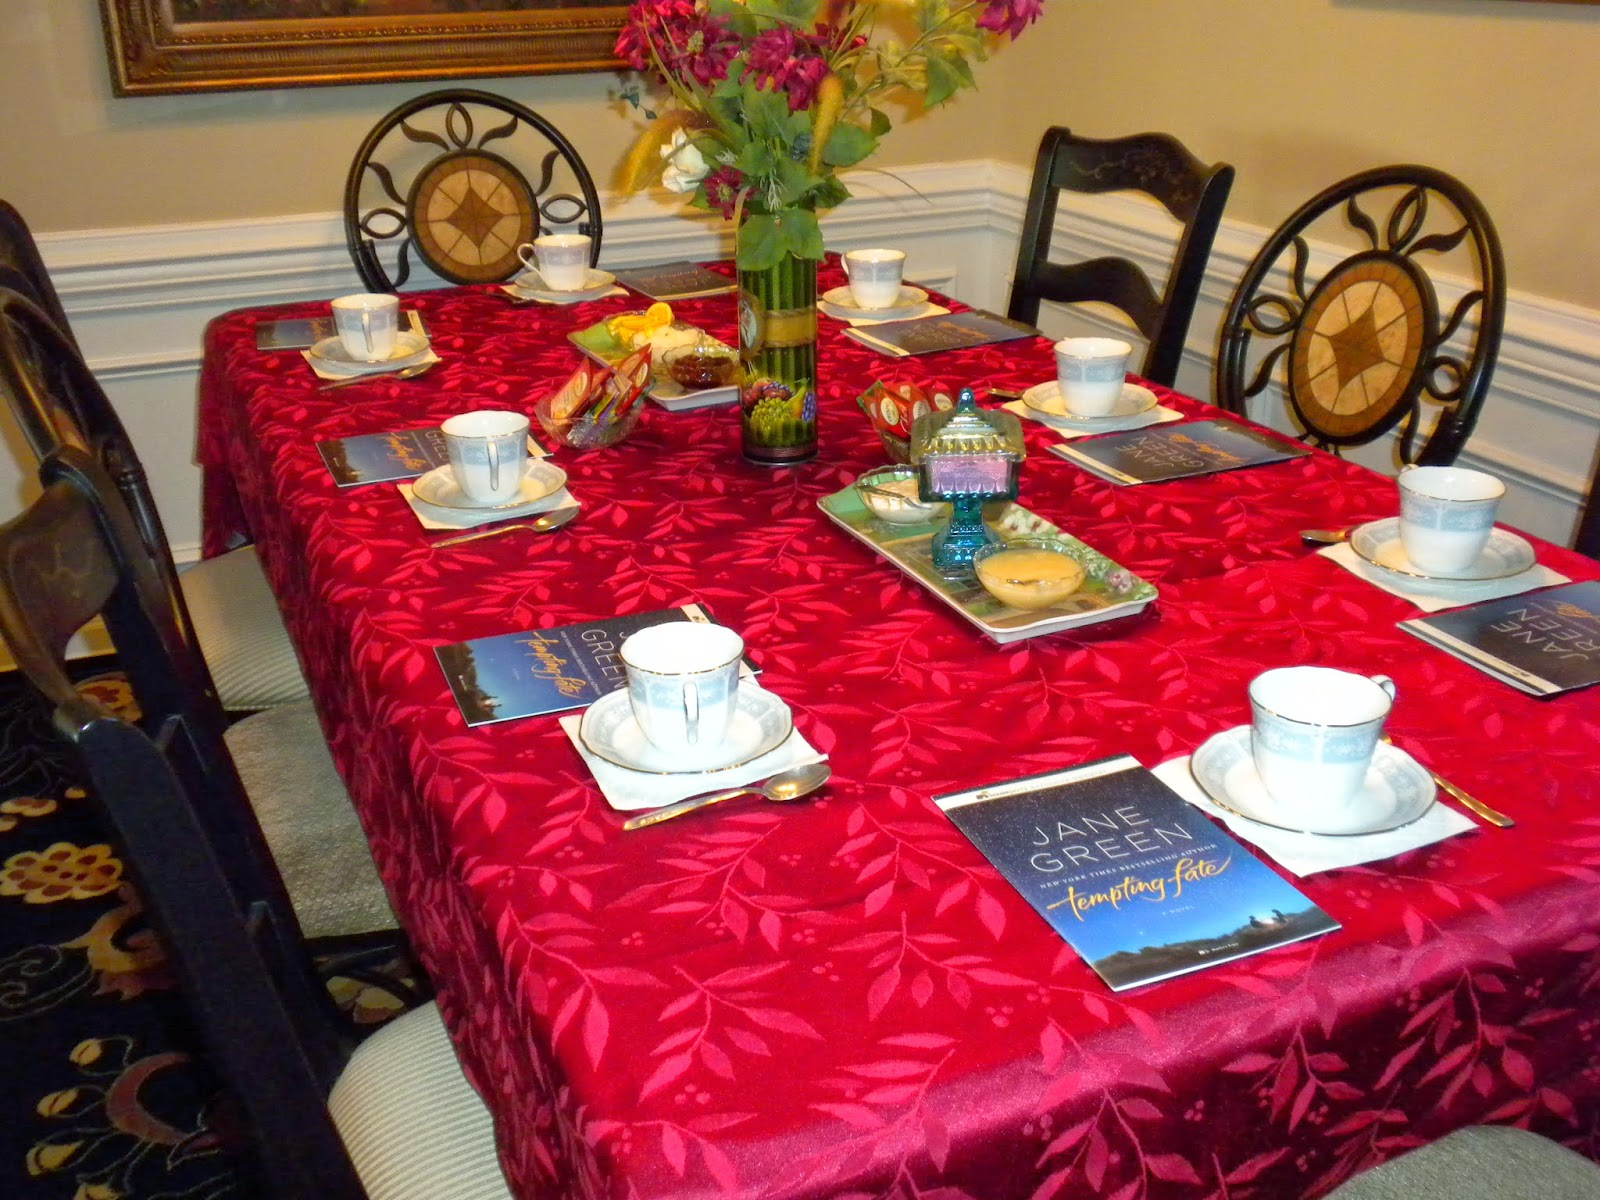 Table setting for a tea party by Substance of Living